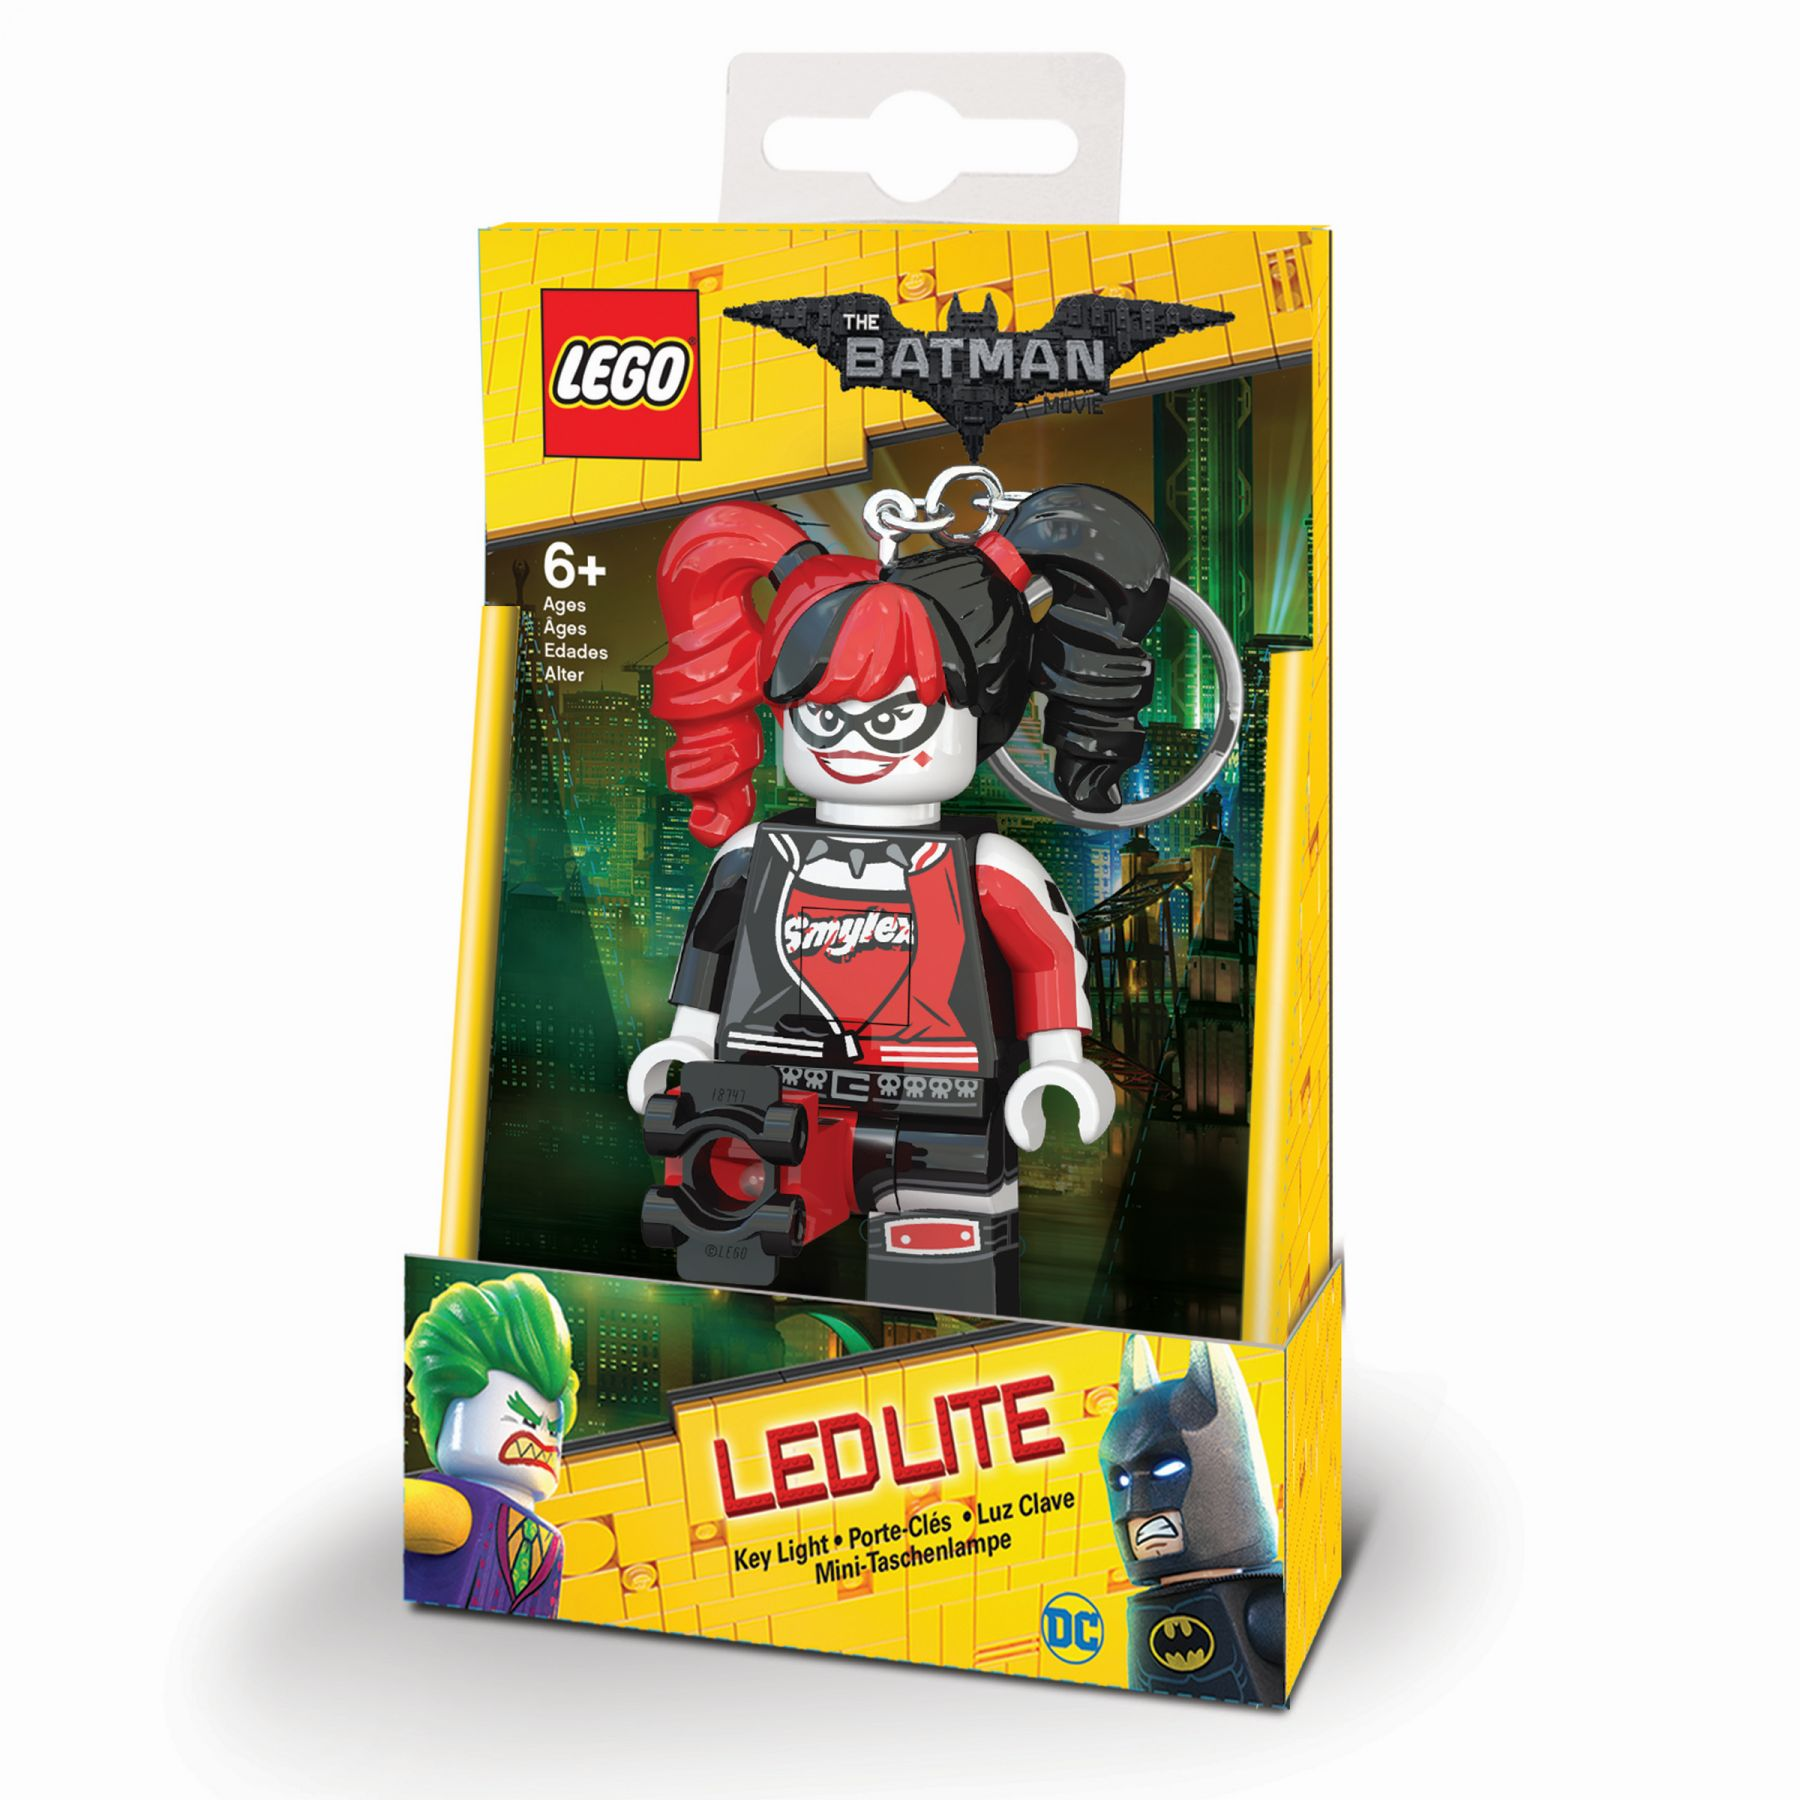 LEGO Gear 5005301 THE LEGO® BATMAN MOVIE – Harley Quinn™ Schlüsselanhänger mit Licht